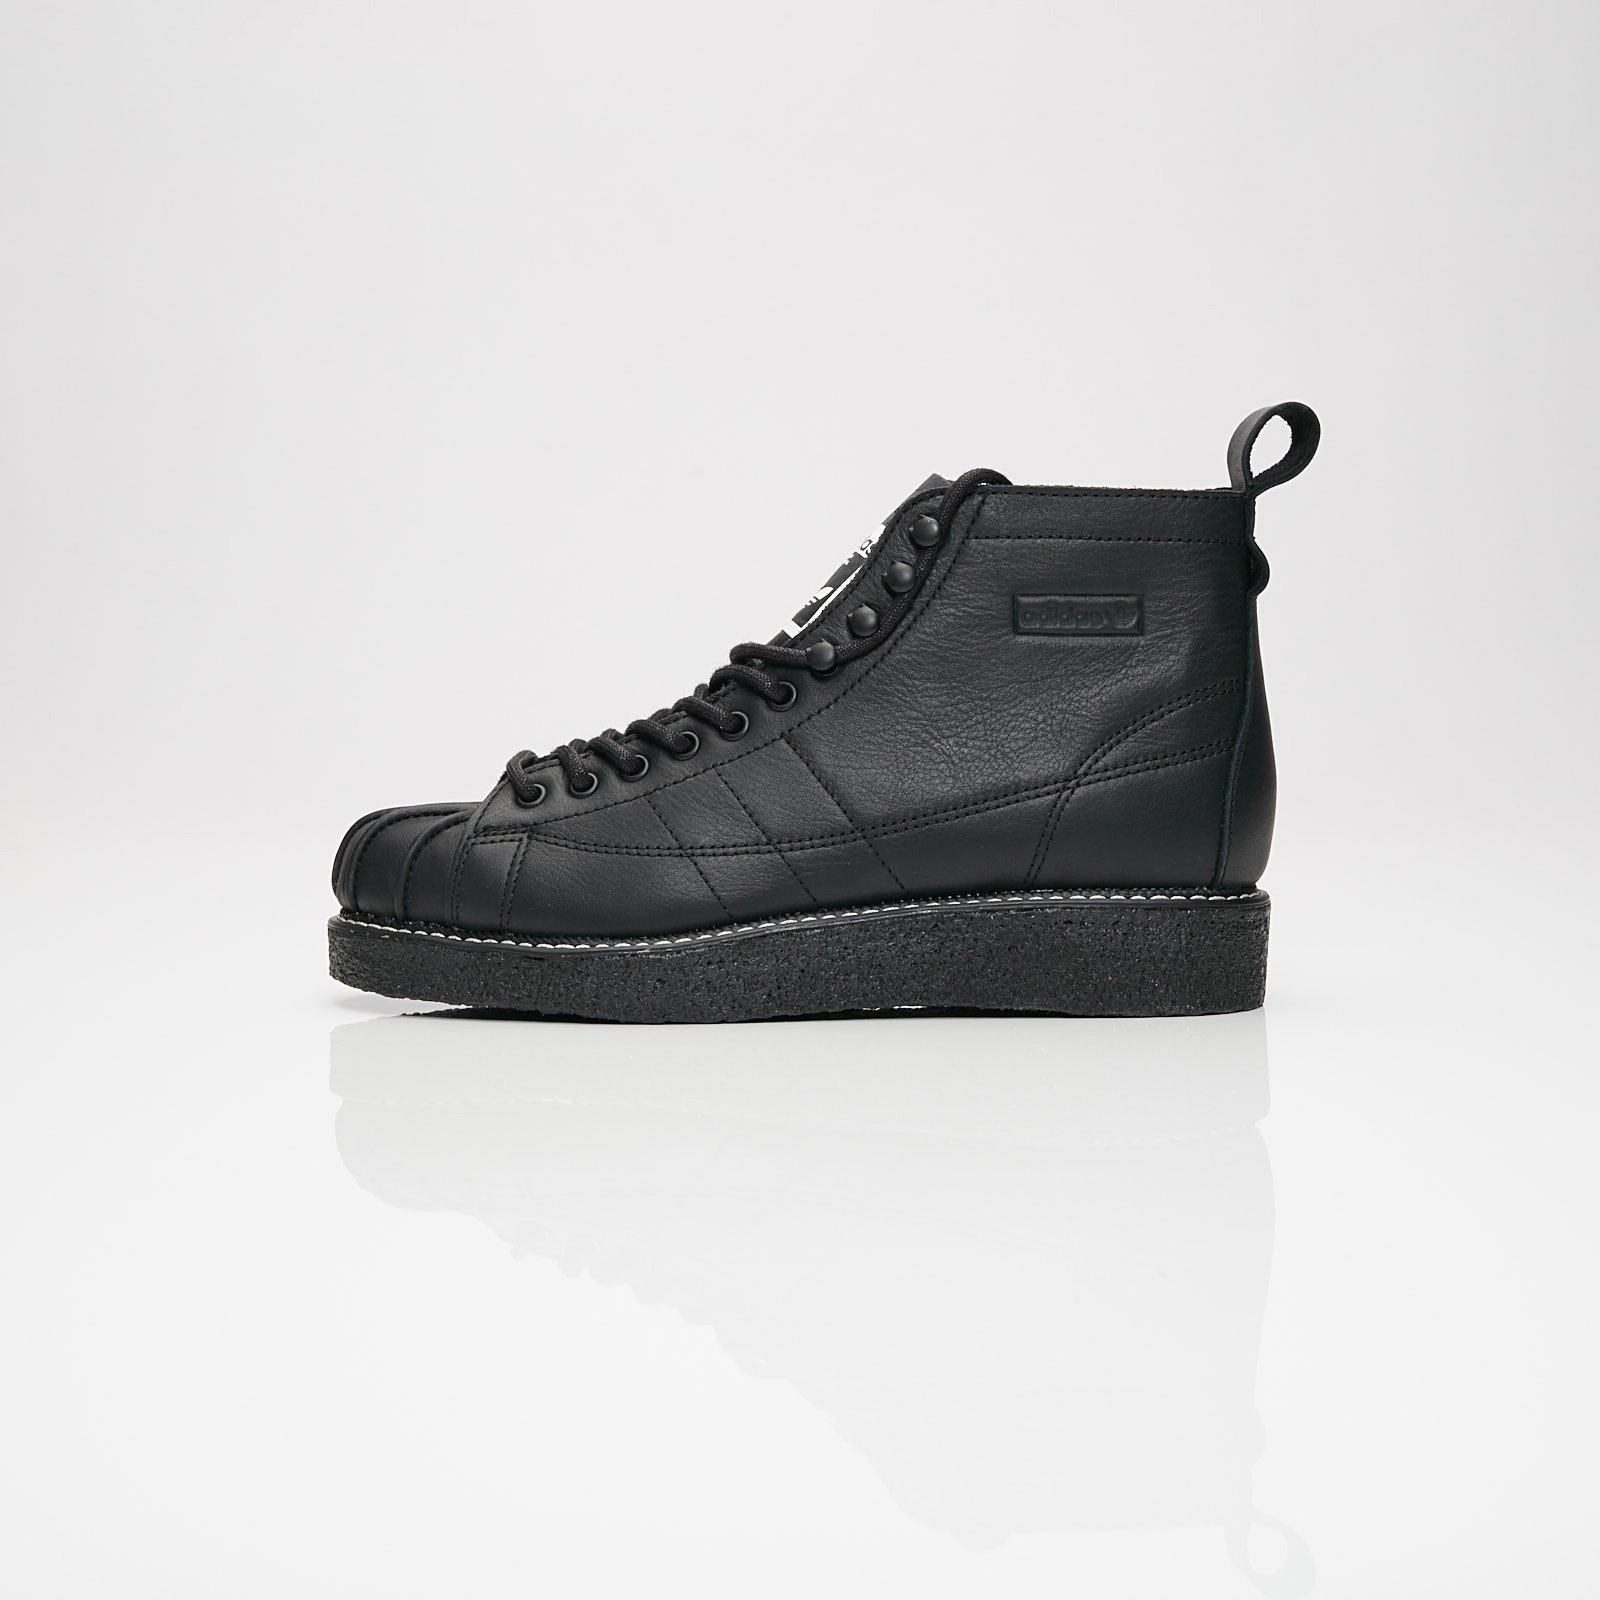 adidas superstar boot luxe w